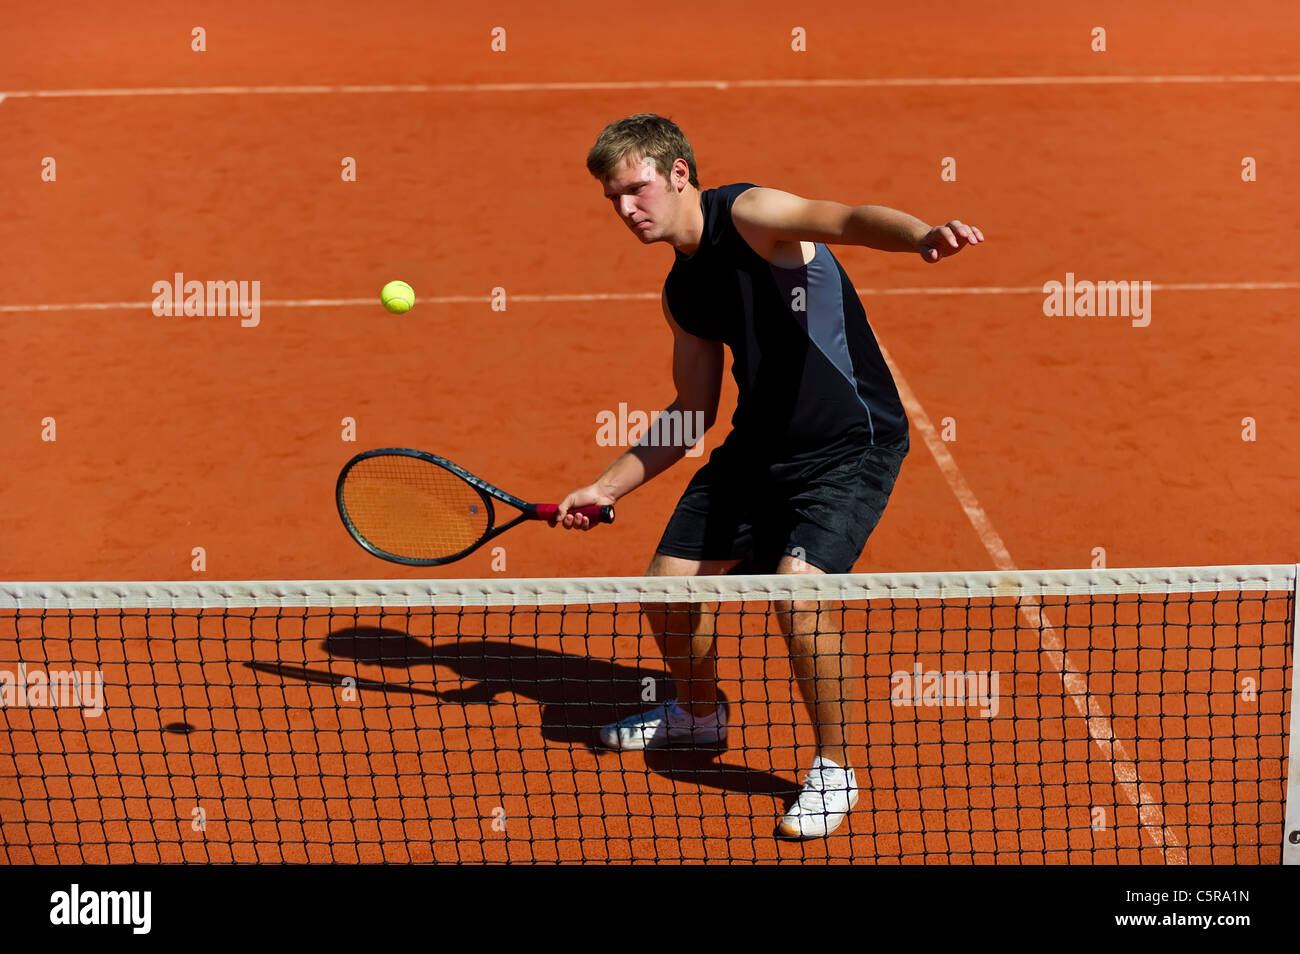 A tennis player up close to the net concentrates on volley - Stock Image